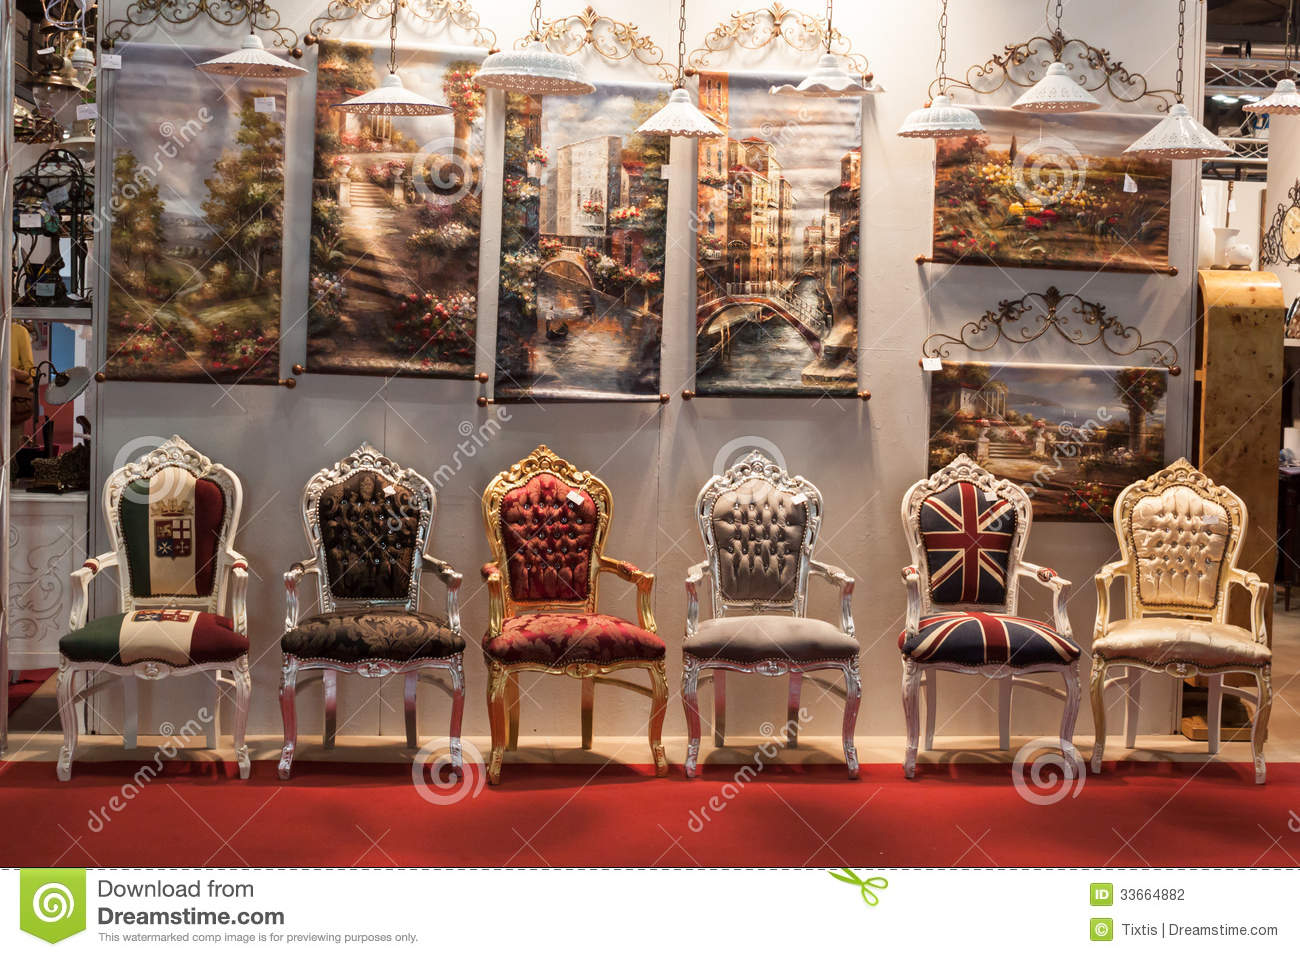 Chairs at macef home show in milan editorial photography for All about interior decoration